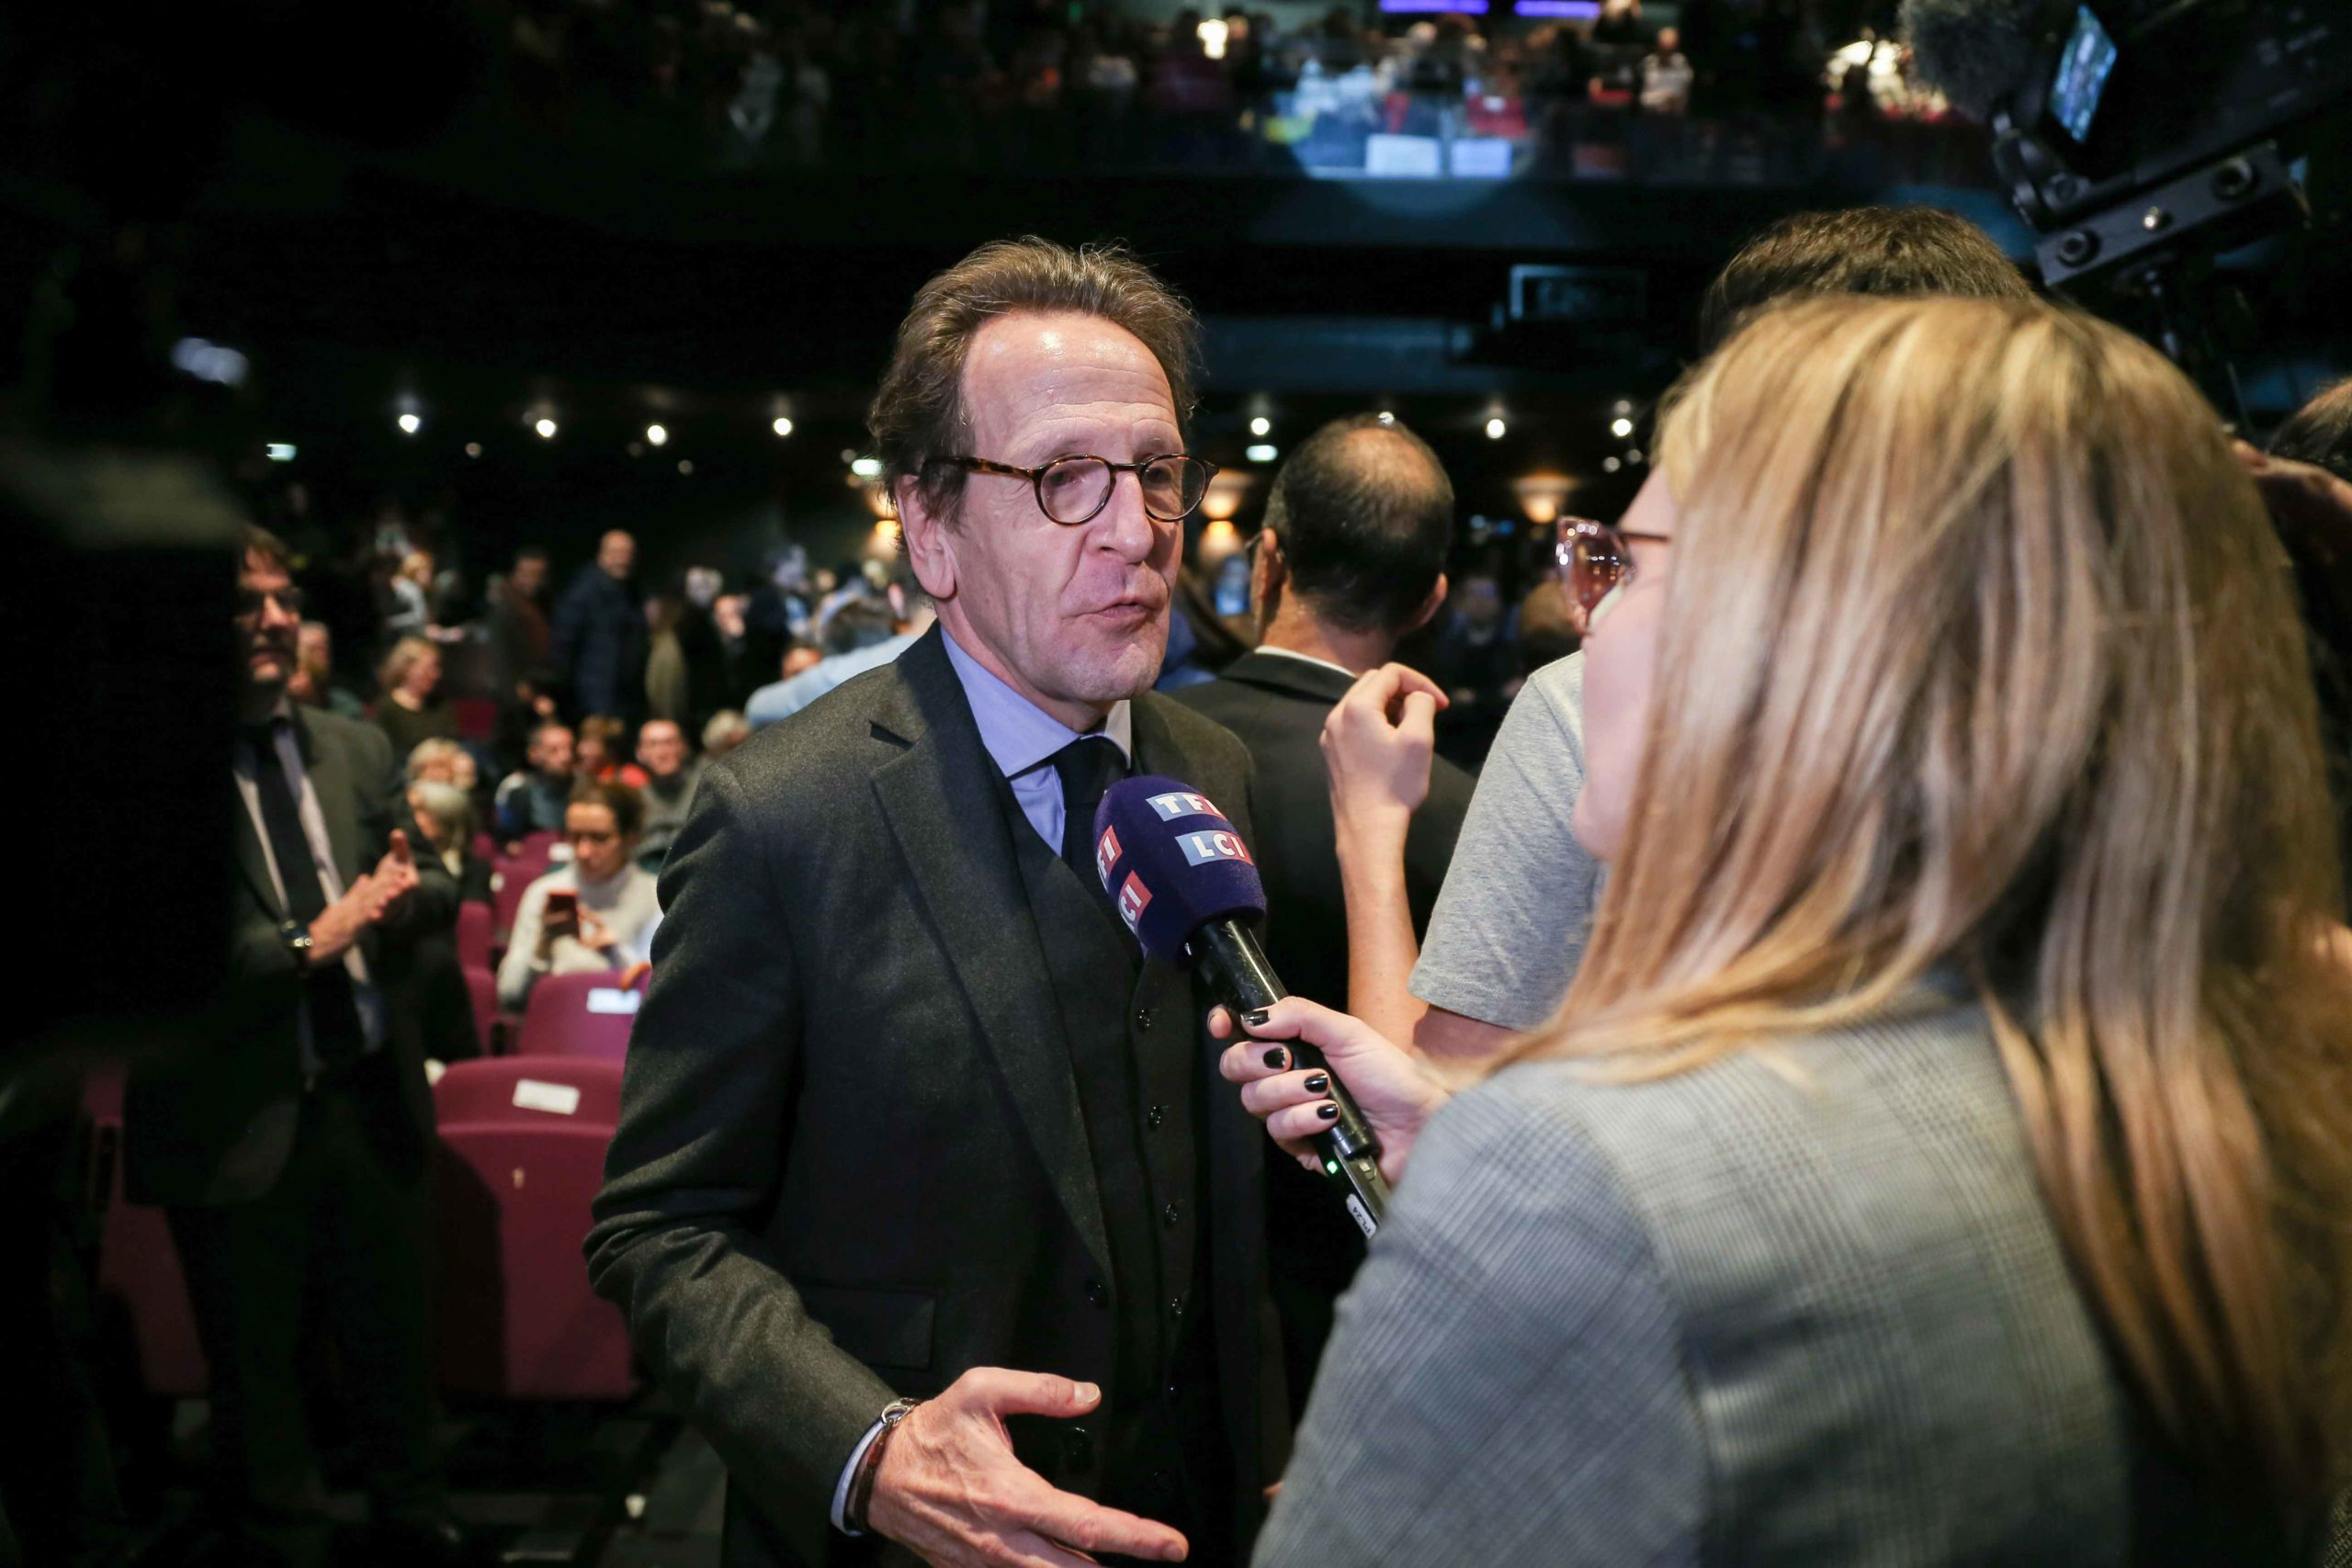 La Republique en Marche (LREM) group president at the National Assembly Gilles Le Gendre (C) takes part in the Benjamin Griveaux meeting, at the Bobino theater in Paris, on January 27, 2020. Benjamin Griveaux is the official LREM candidate for the Paris 20